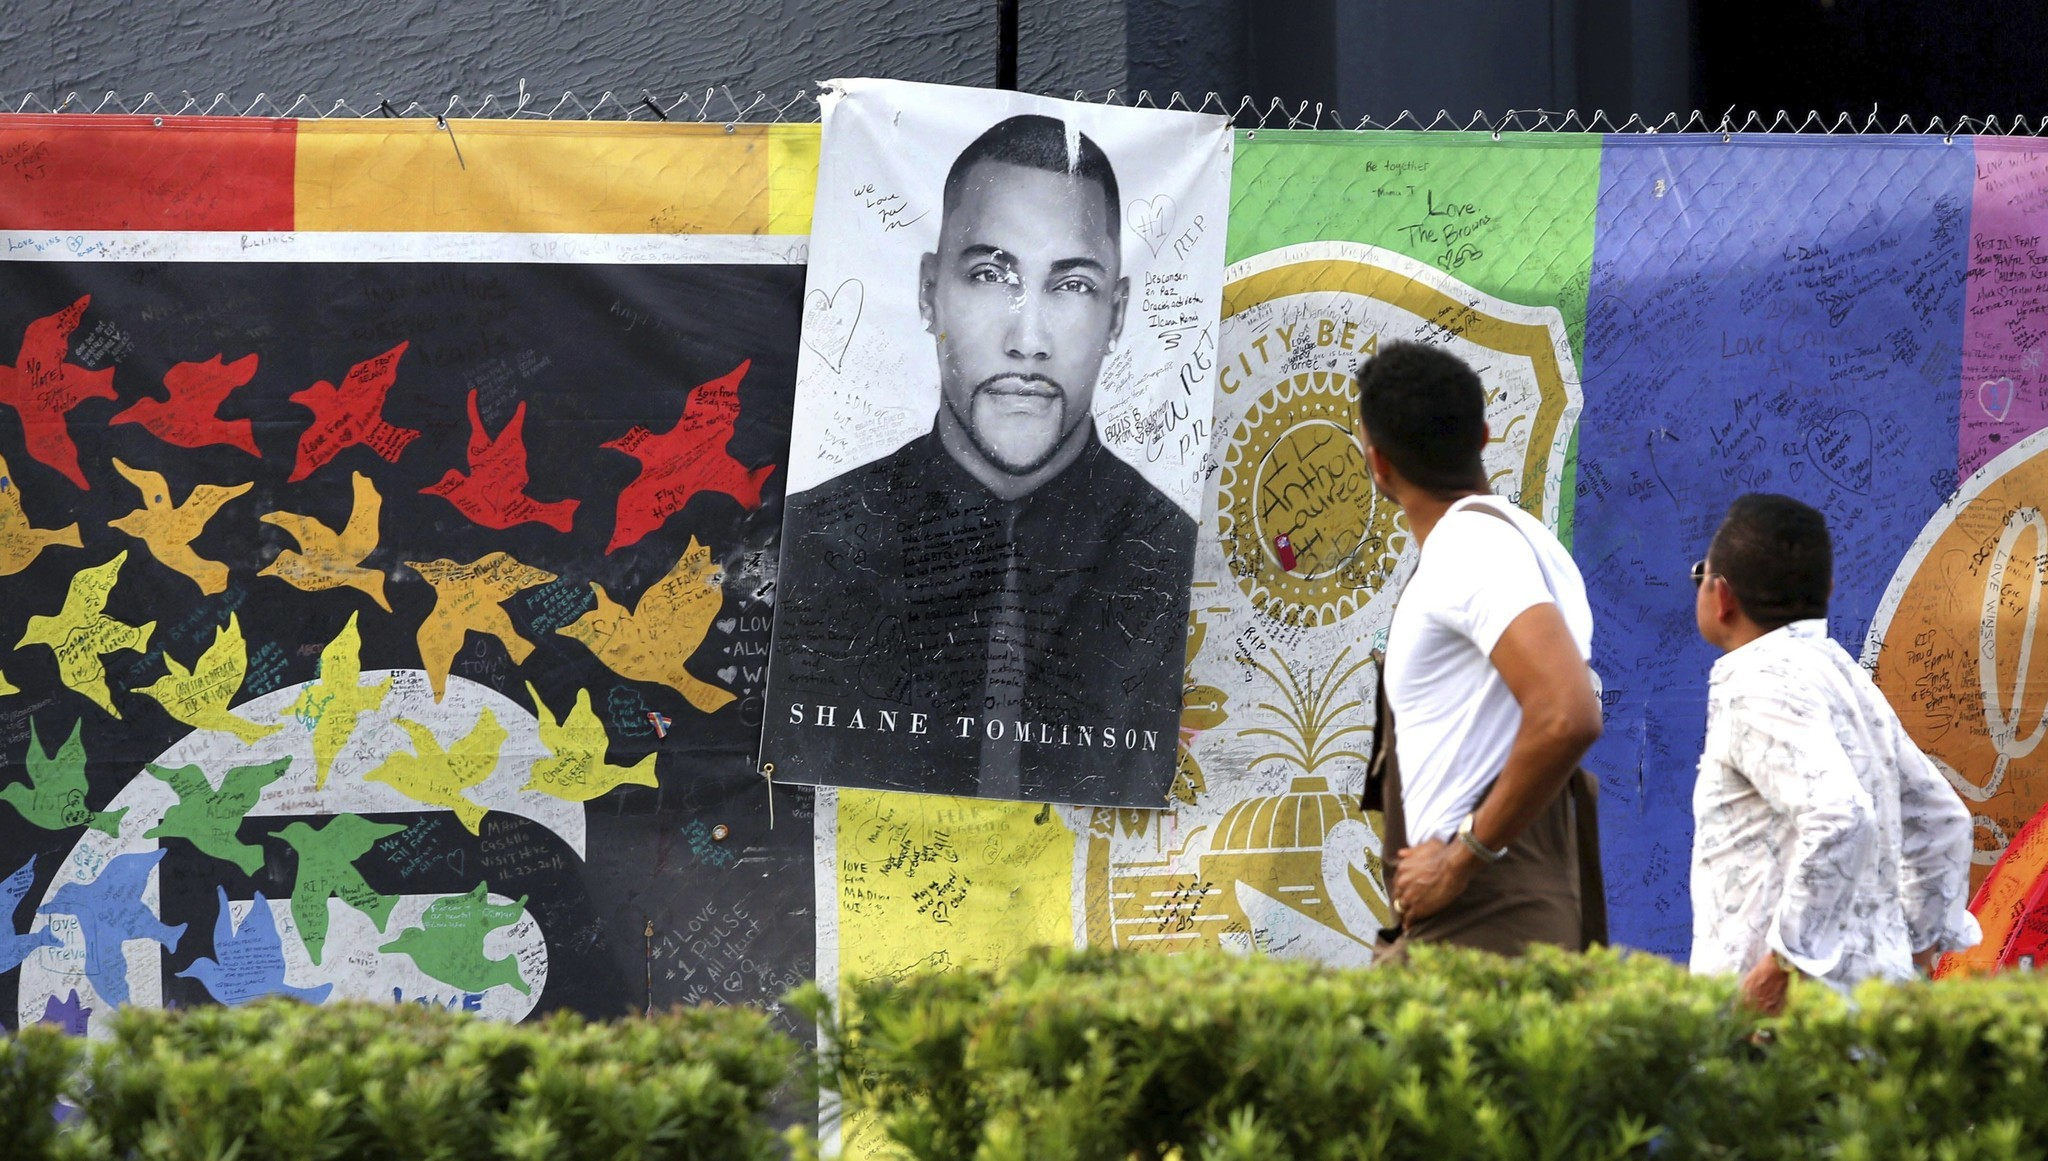 Visitors look at a memorial poster of Pulse nightclub massacre victim Shane Tomlinson at the closed club in Orlando, Fla., on Oct. 2, 2017, a day after the mass shooting Las Vegas.